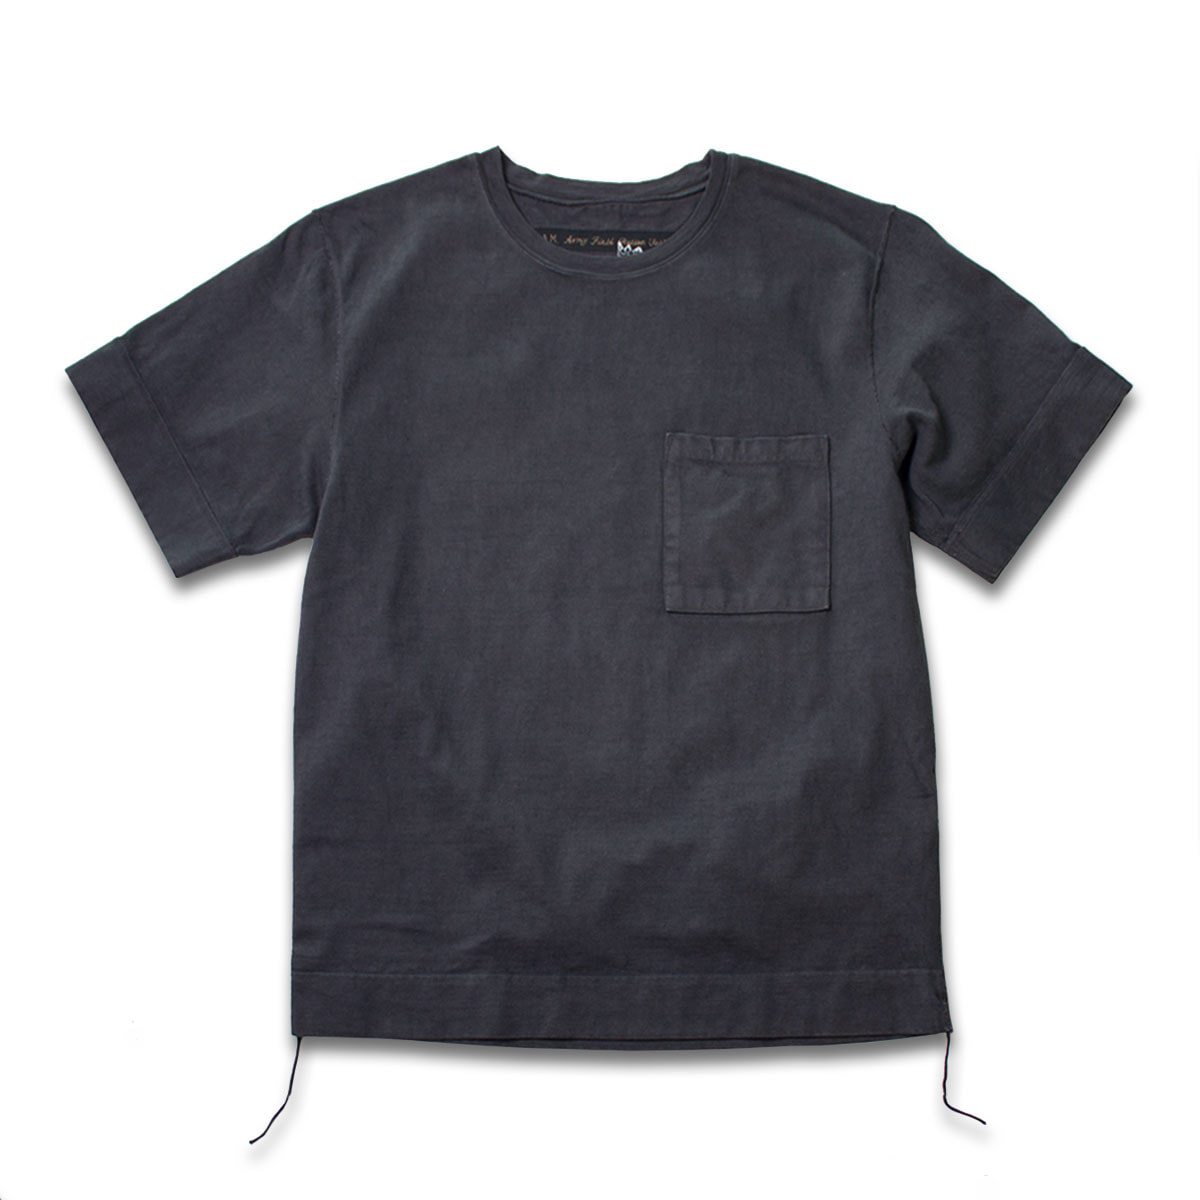 [KAPITAL] DI-PACK JERSEY ARMY PACK T 'BLACK'